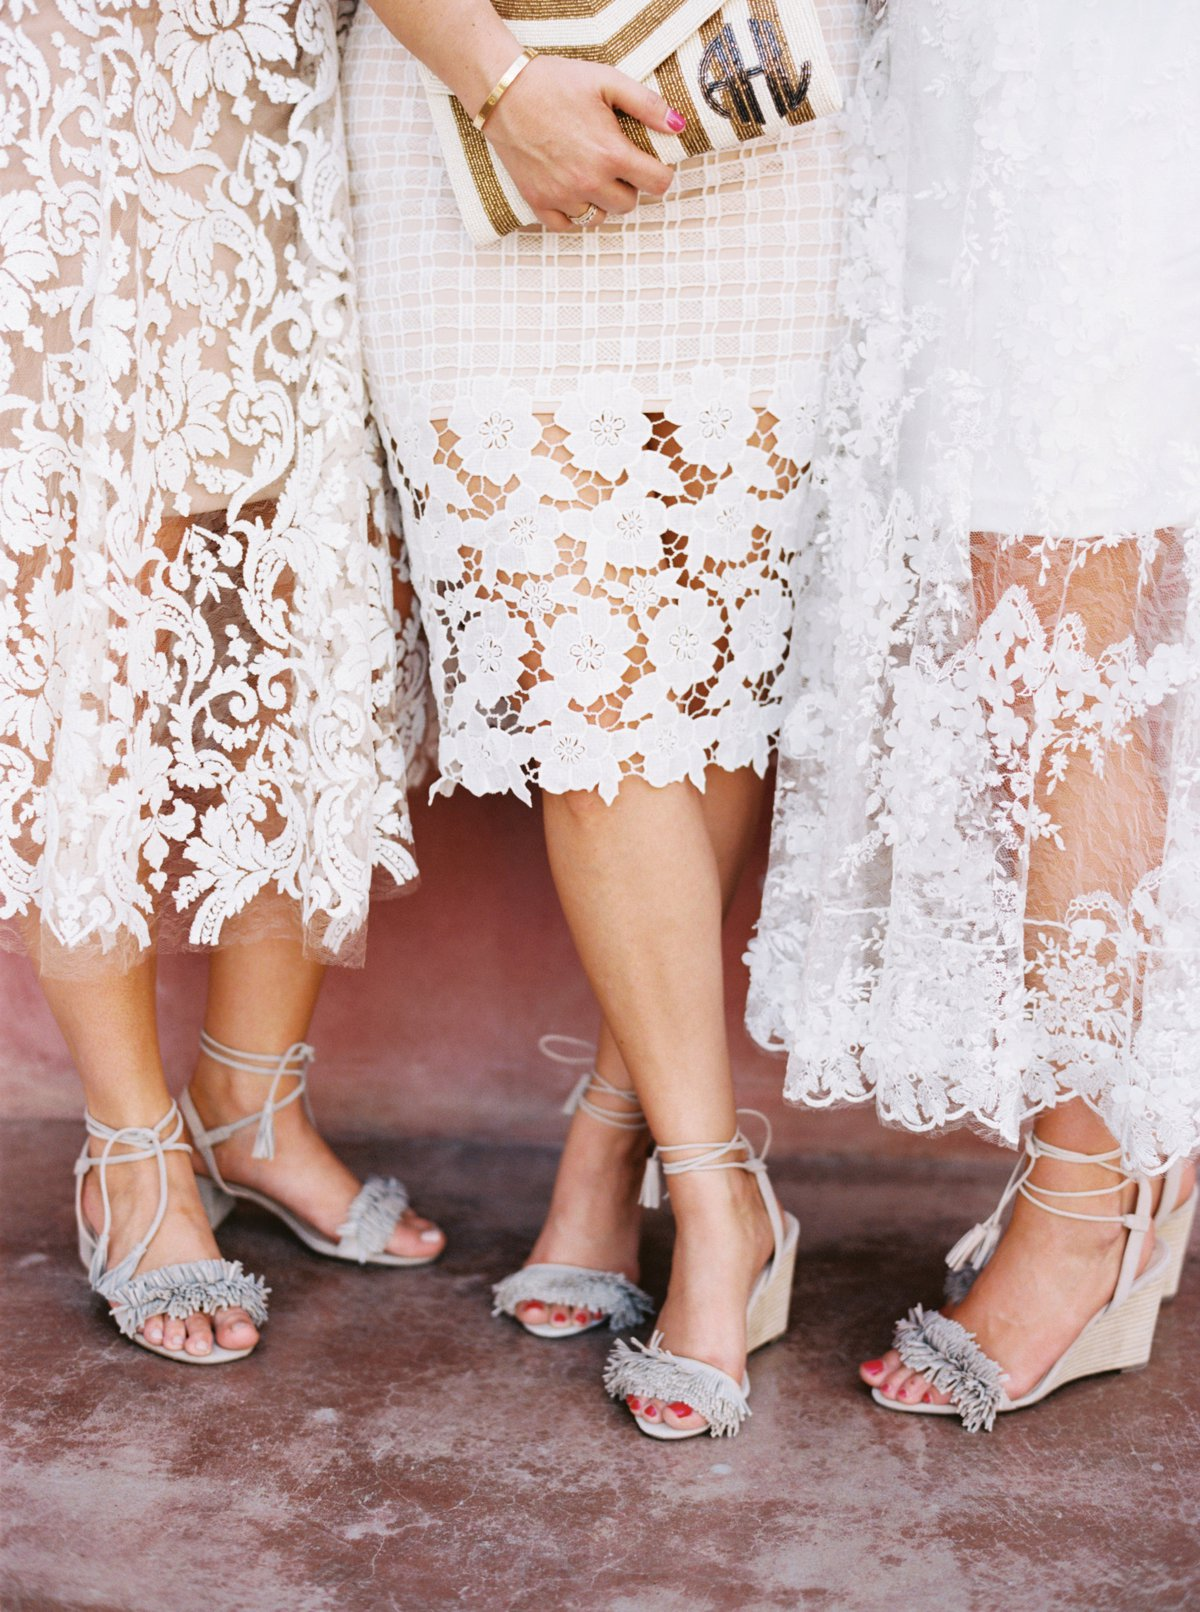 Colorful Texas Wedding By Hannah Mayson Southern Weddings Magazine Little Fresco Pink Bowie Shoes What Were Some Of The Most Meaningful Or Special Parts Your Ceremony My Uncle Whom I Am Very Close With Is A Pastor So We Knew Wanted Him To Do